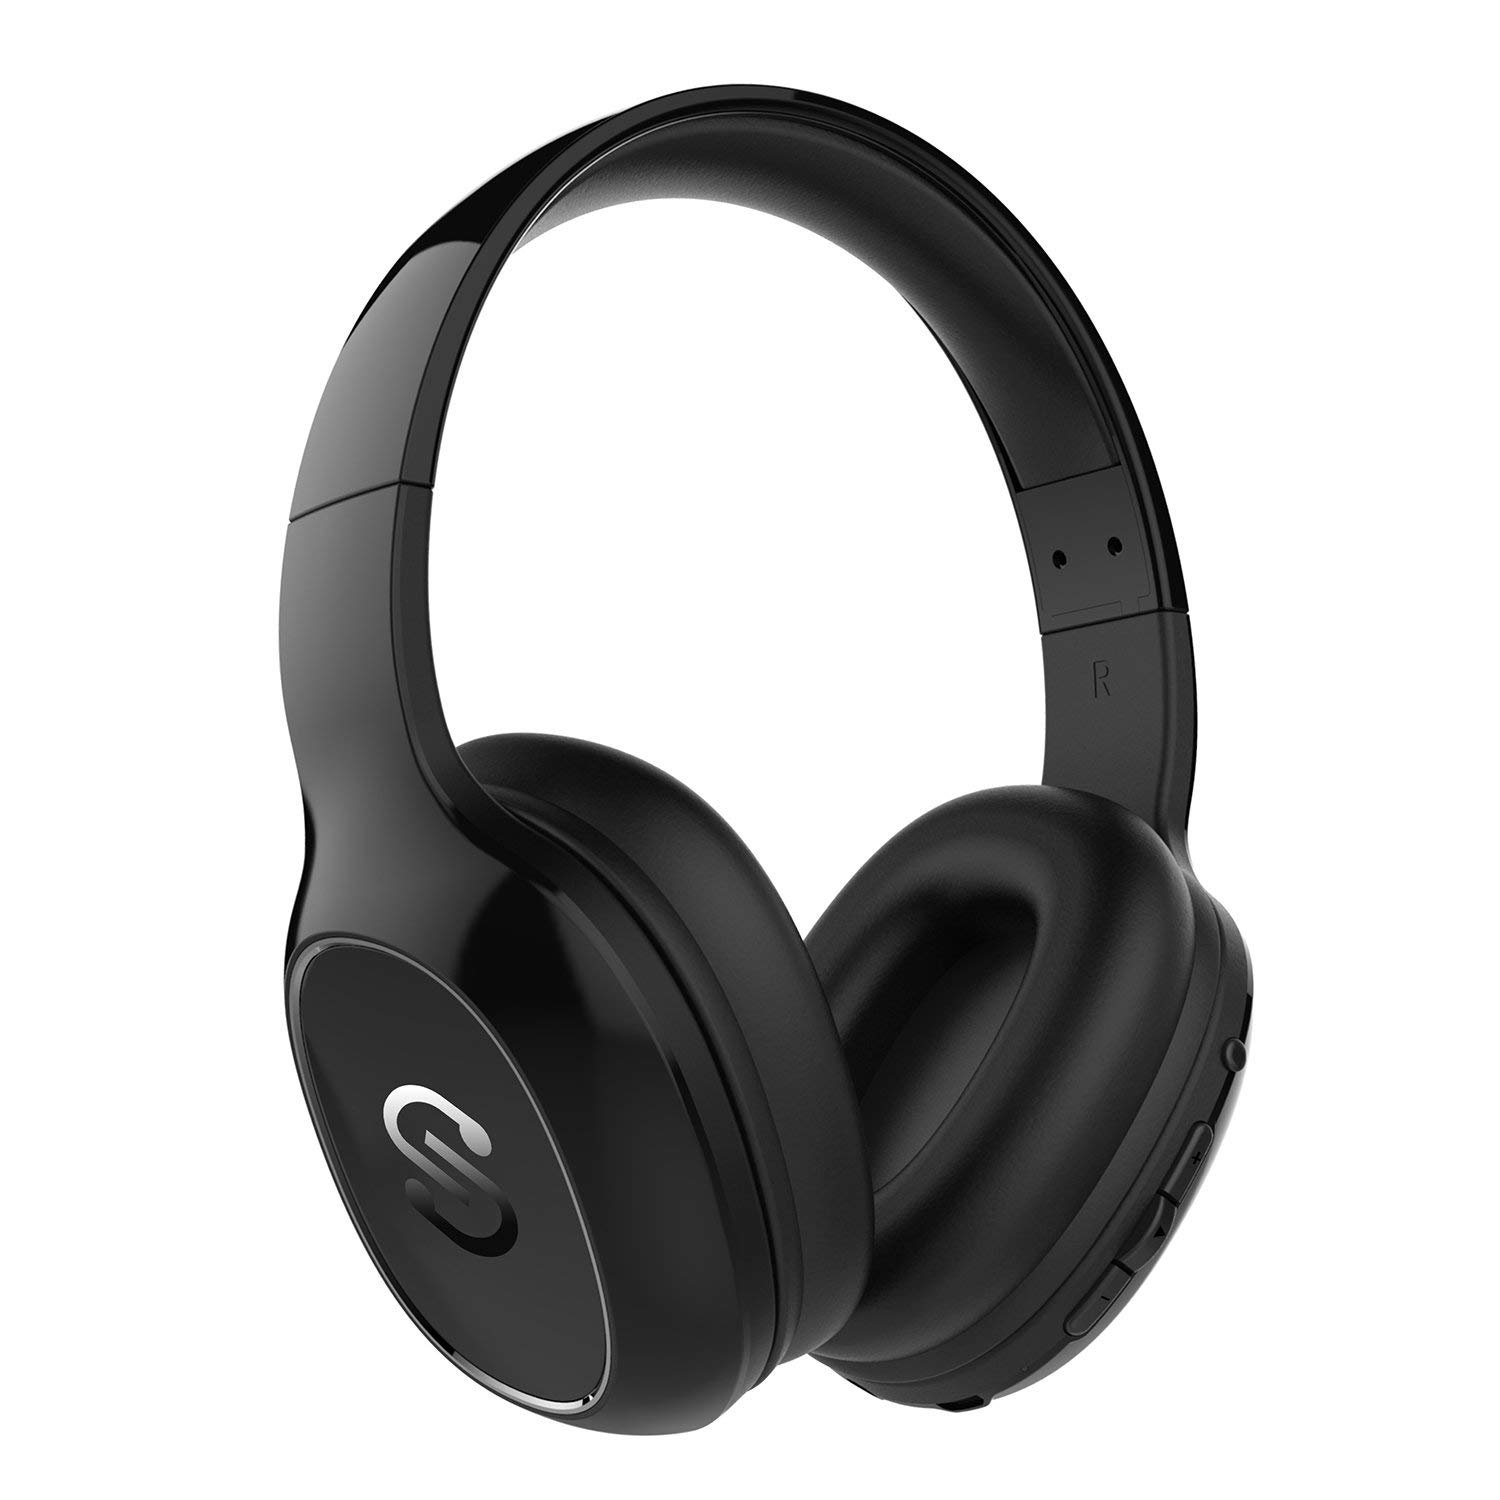 Cascos Bluetooth con Micrófono SoundPEATS